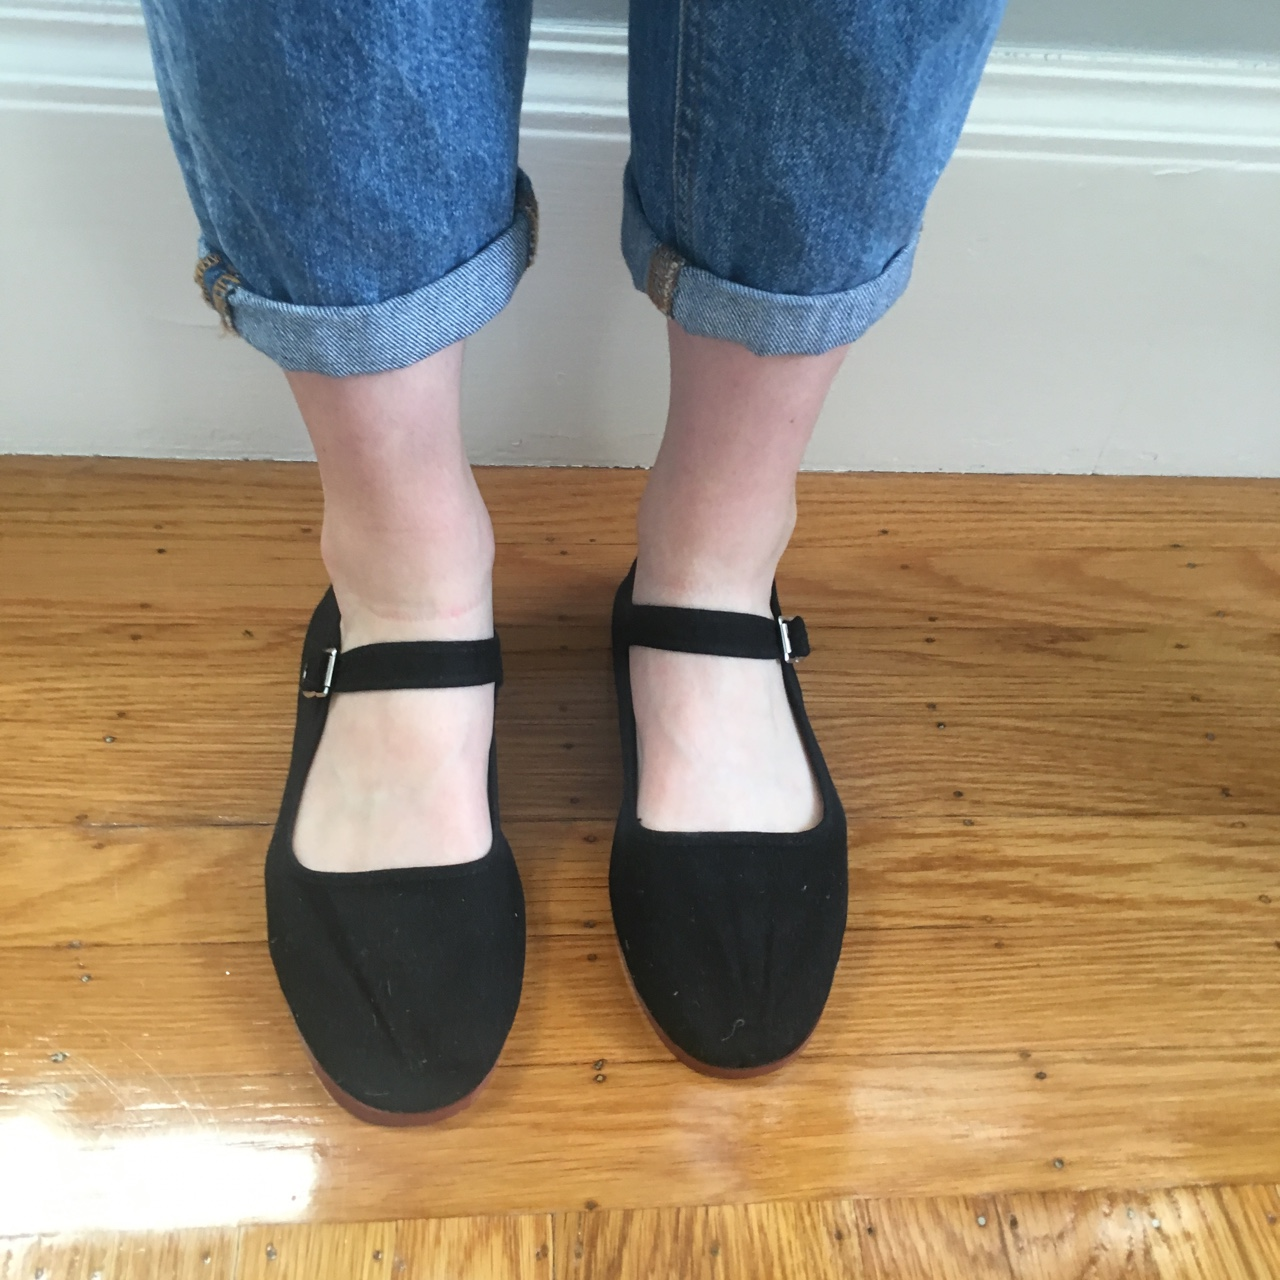 Mary Jane Flat Shoes From Urban Outfitters No Depop